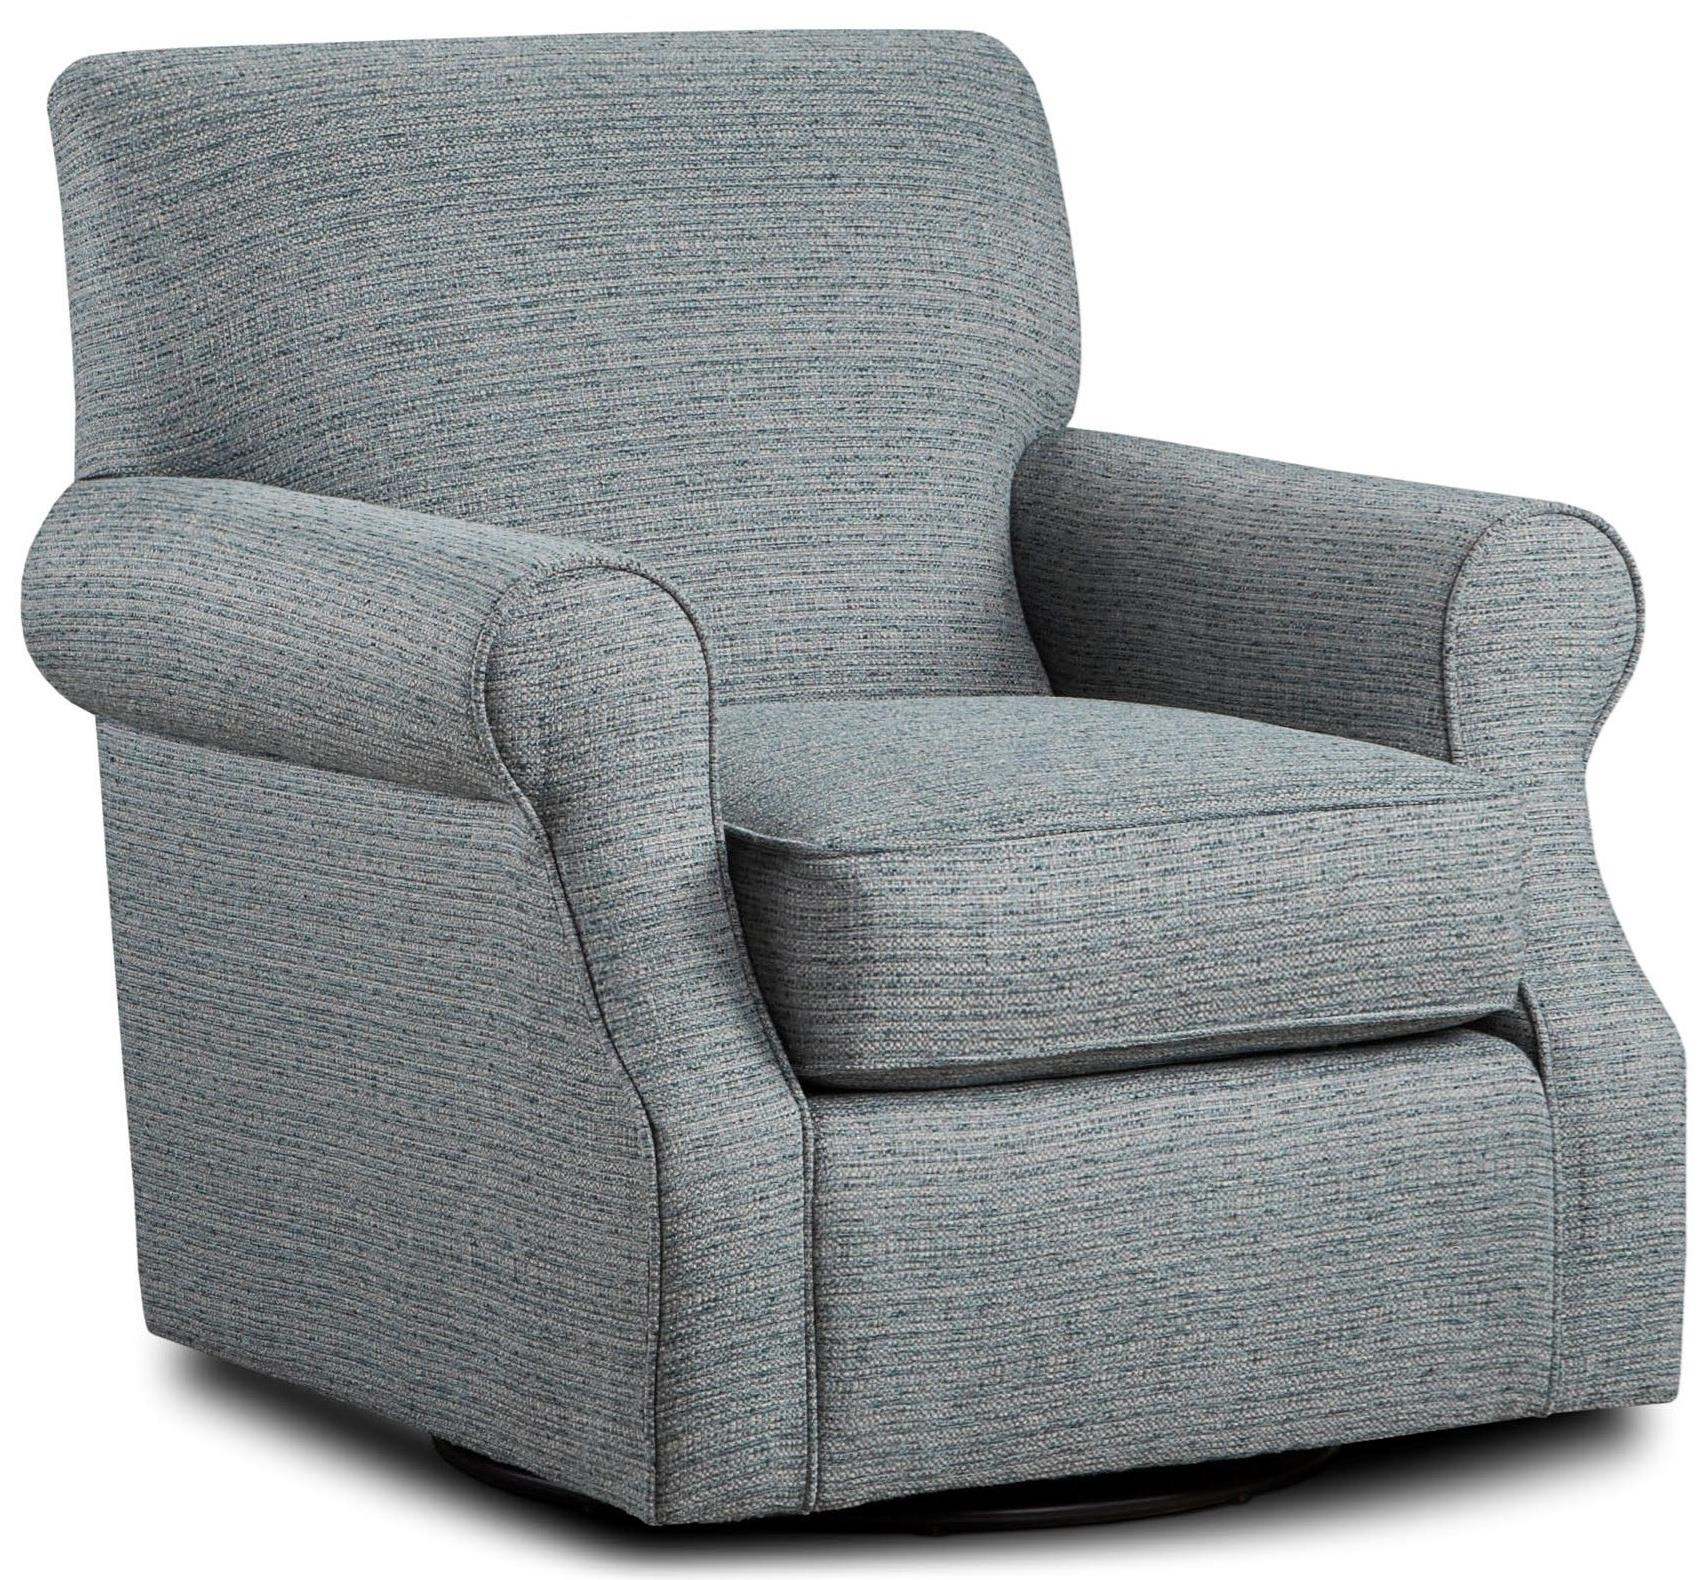 Fusion Furniture 602 Swivel Accent Chair | Lindy's Furniture Company In Umber Grey Swivel Accent Chairs (View 5 of 25)